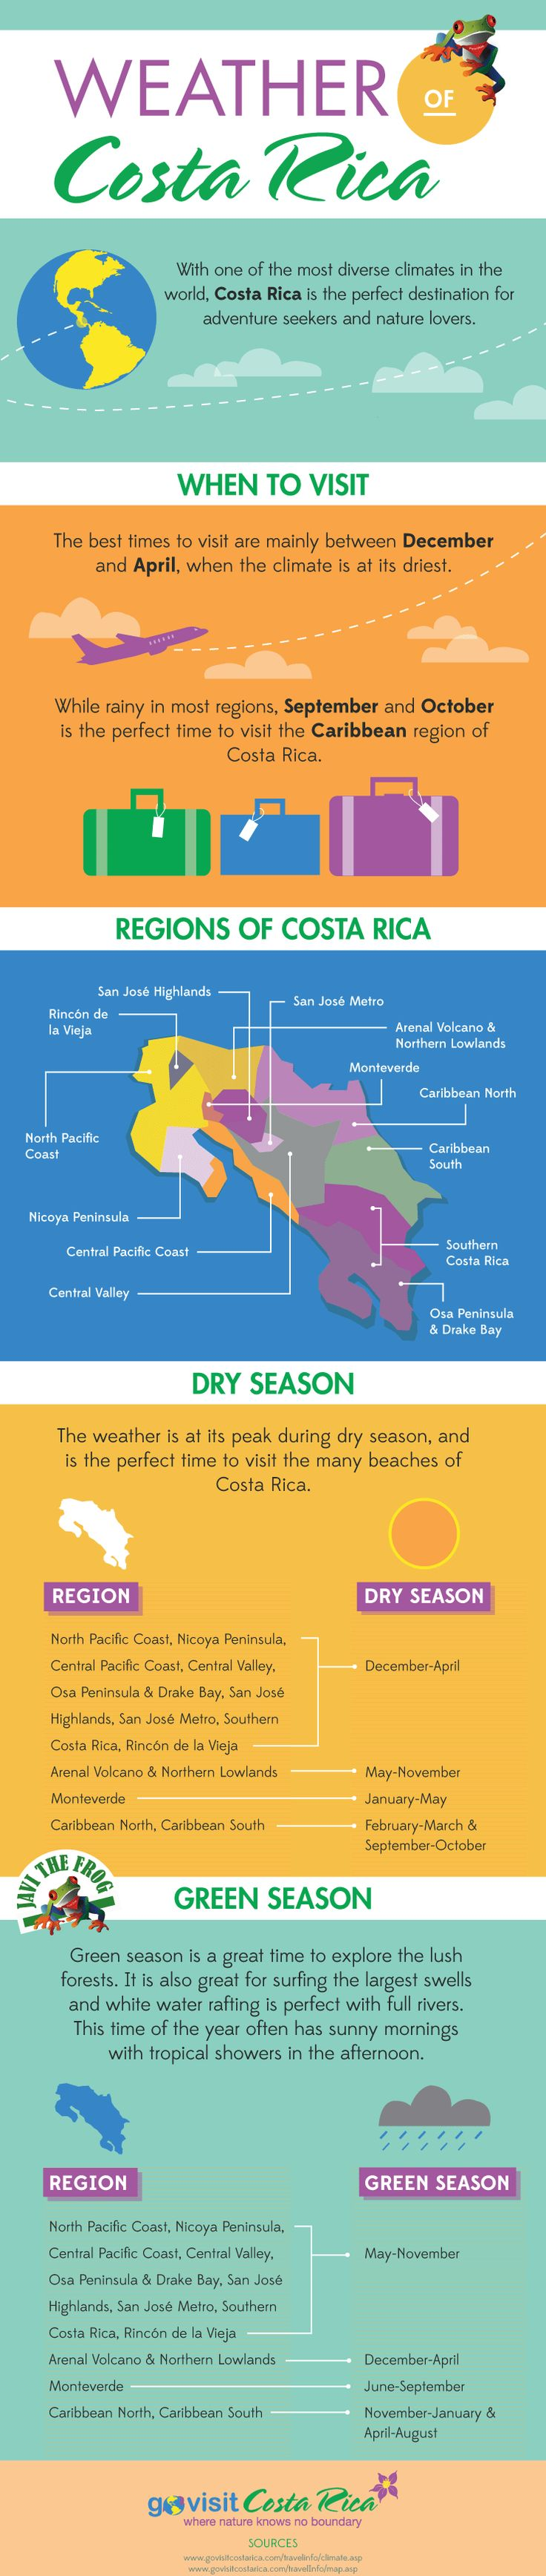 Costa Rica Weather Infographic